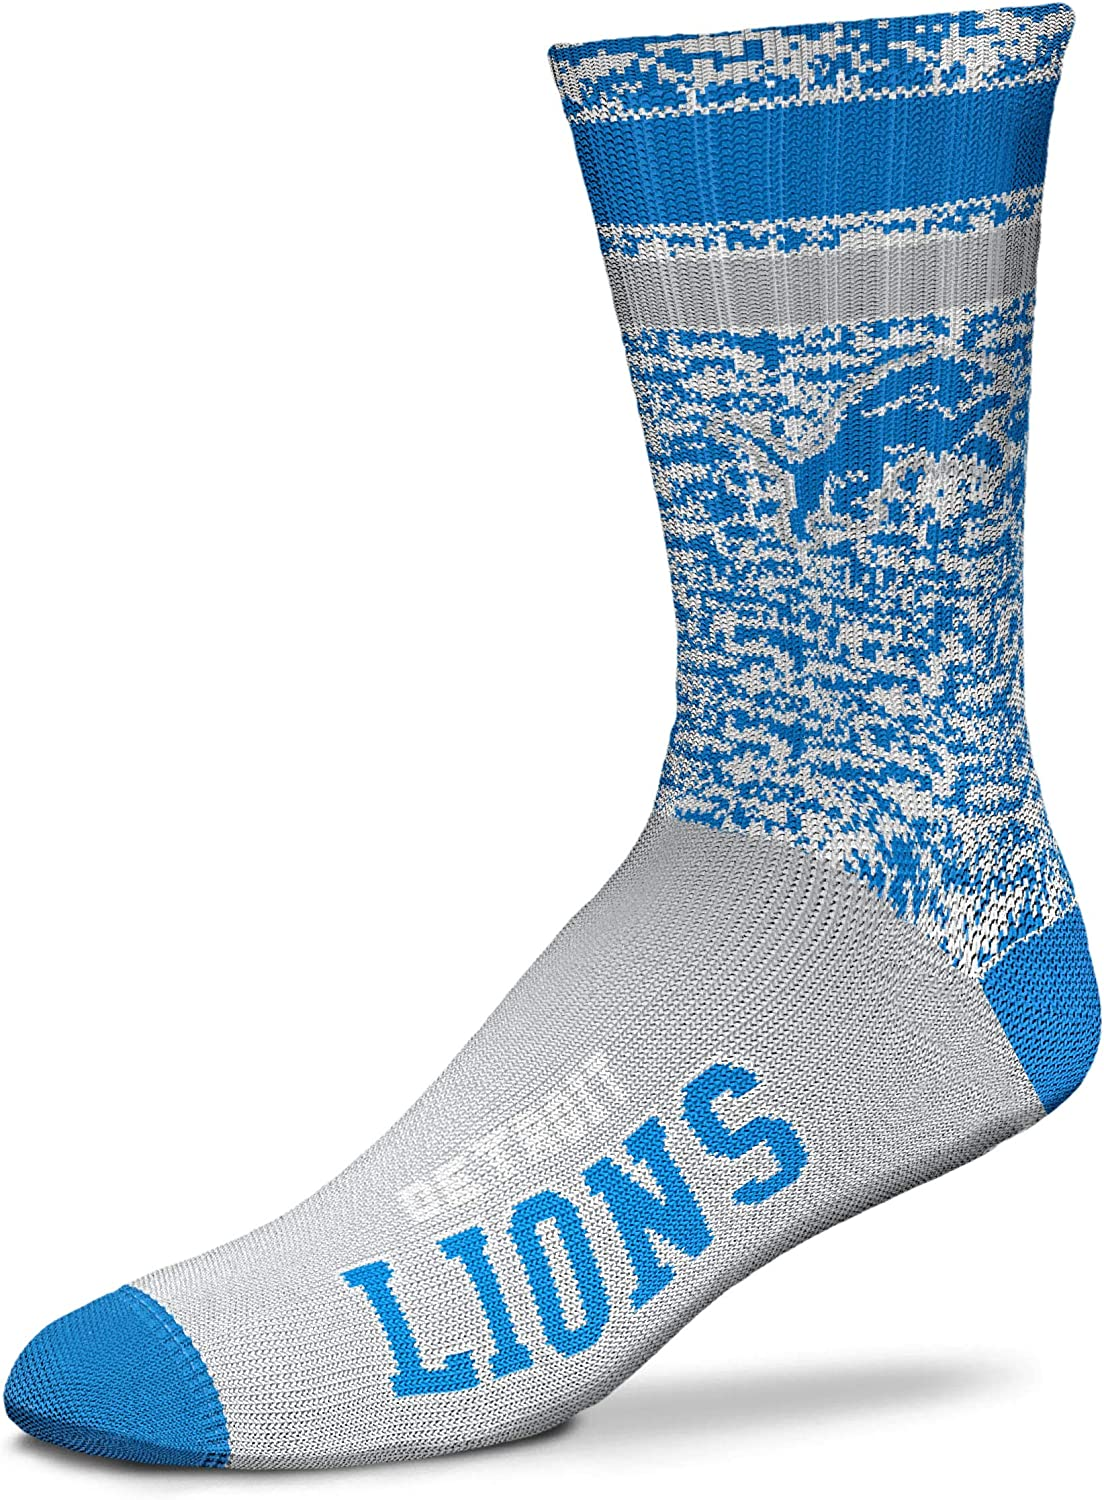 Medium /& Large Available For Bare Feet NFL Retro Deuce Crew Socks